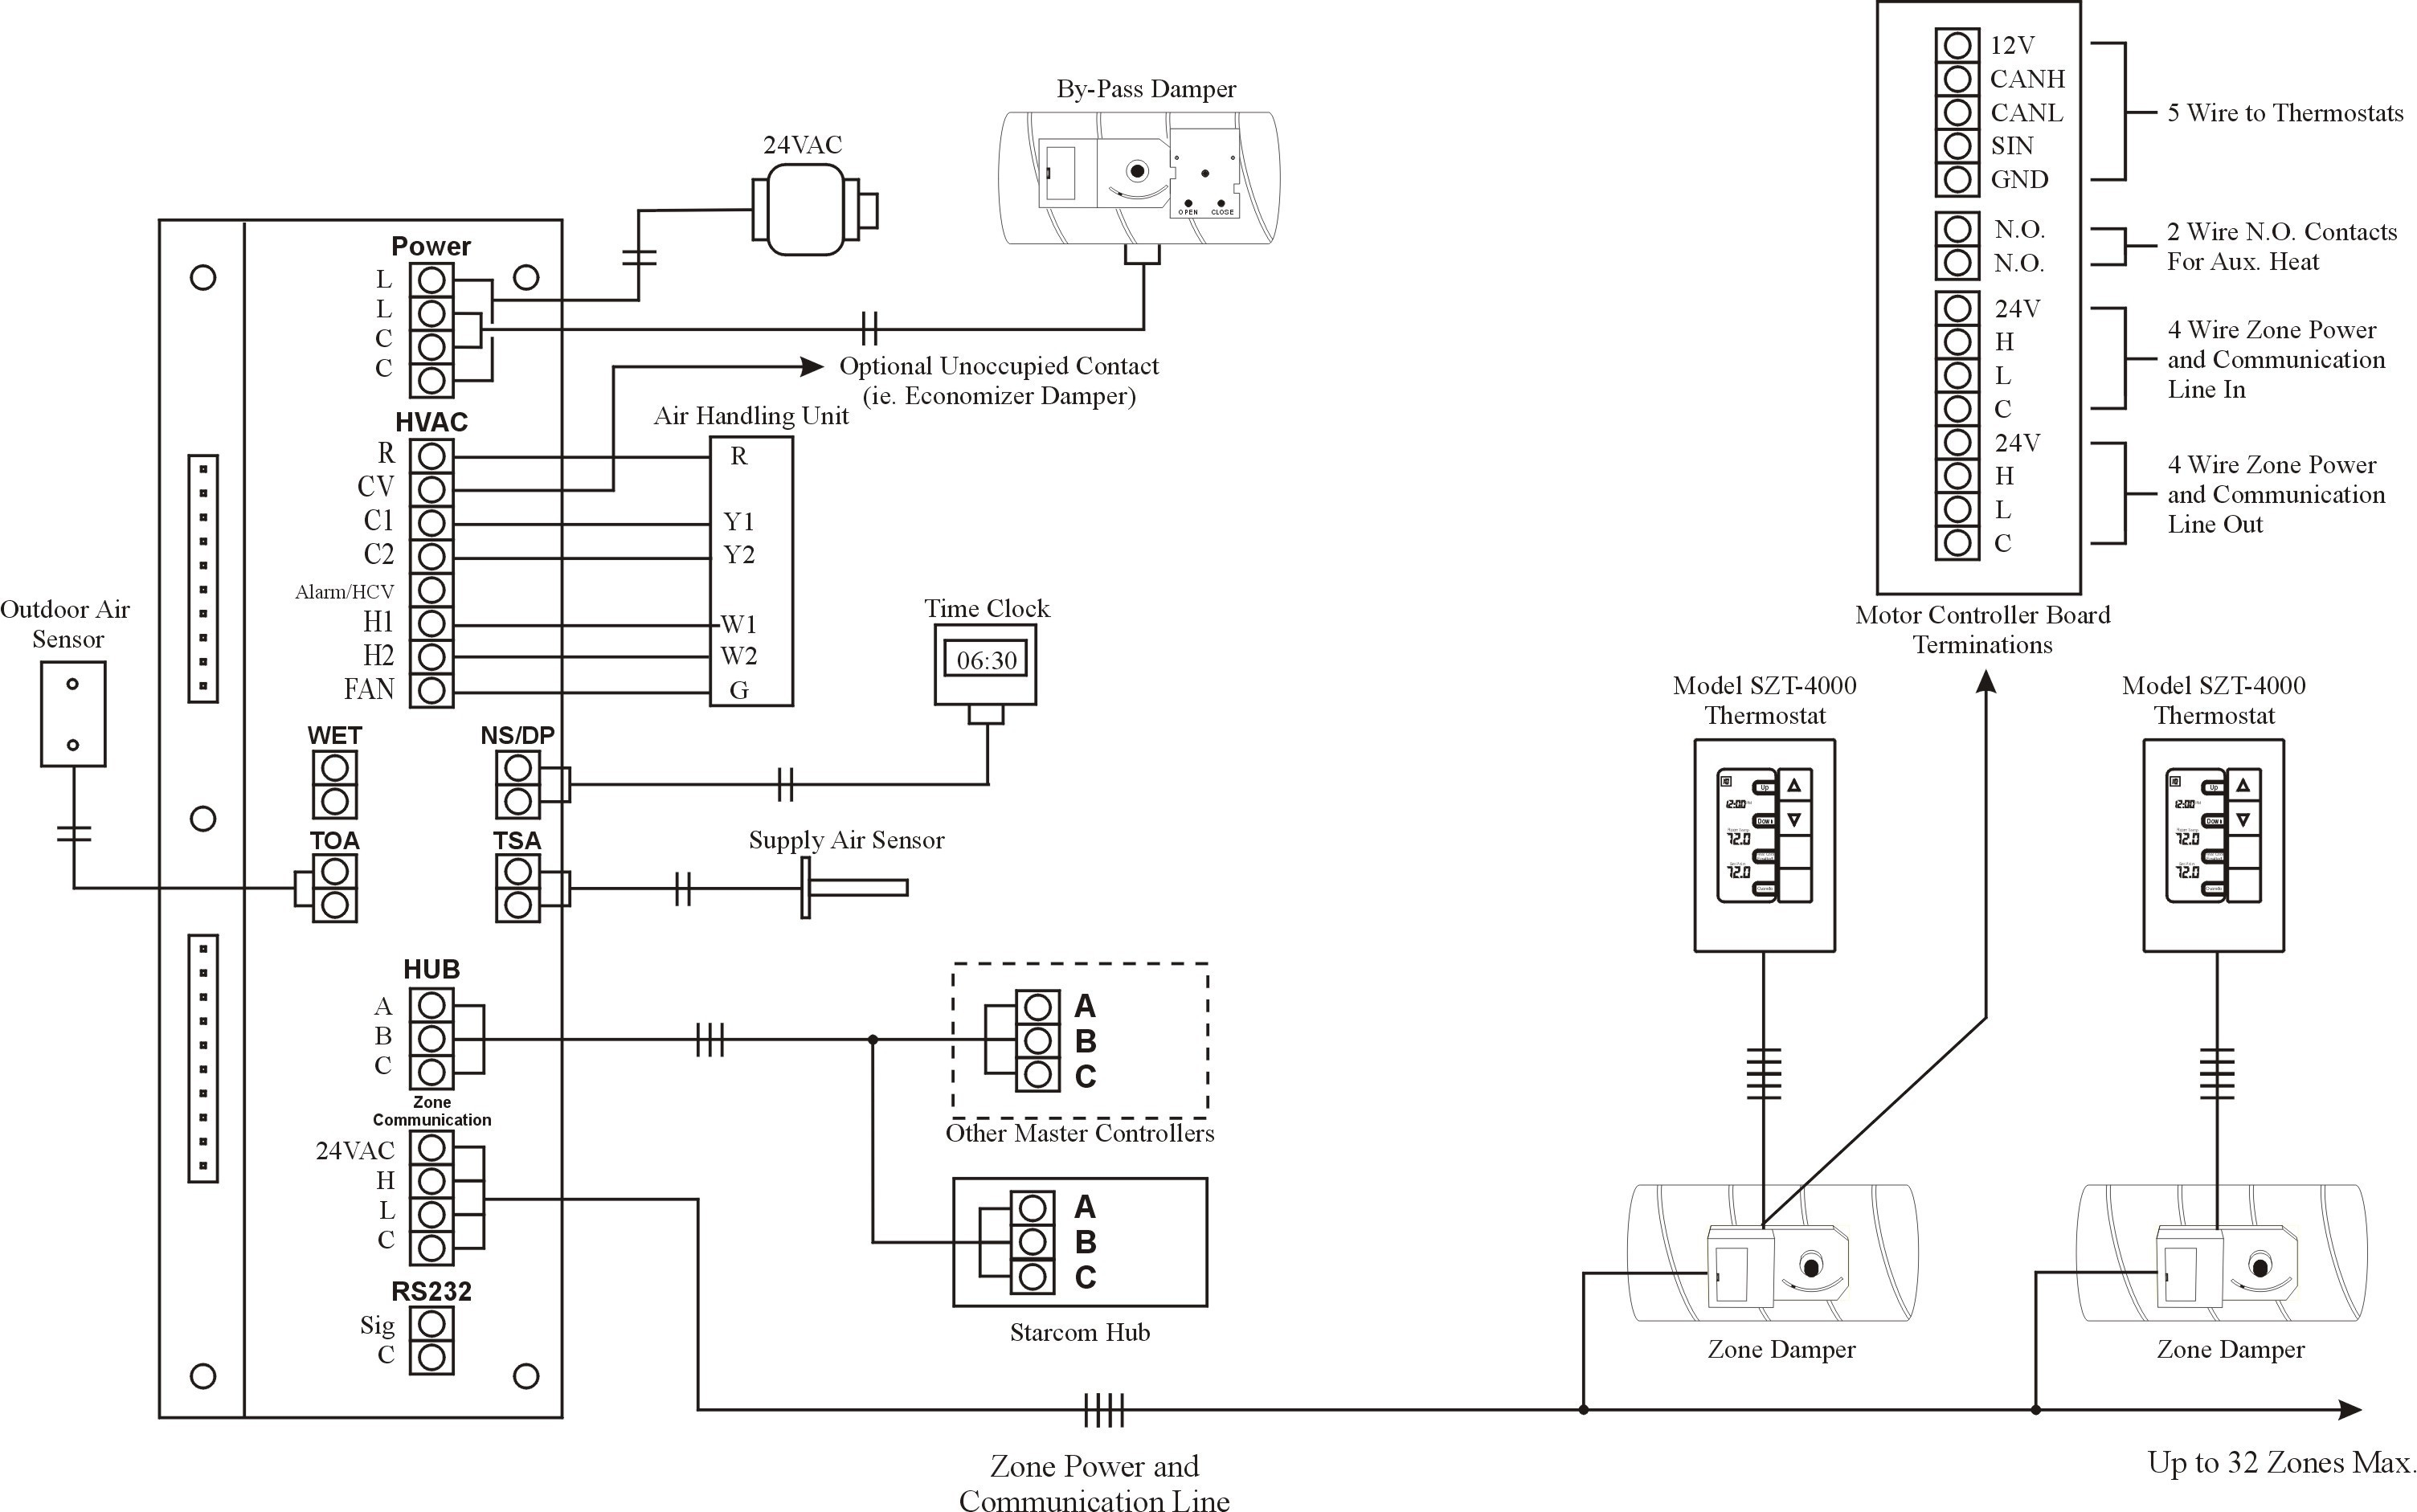 Schematic Home Network Wiring Diagram